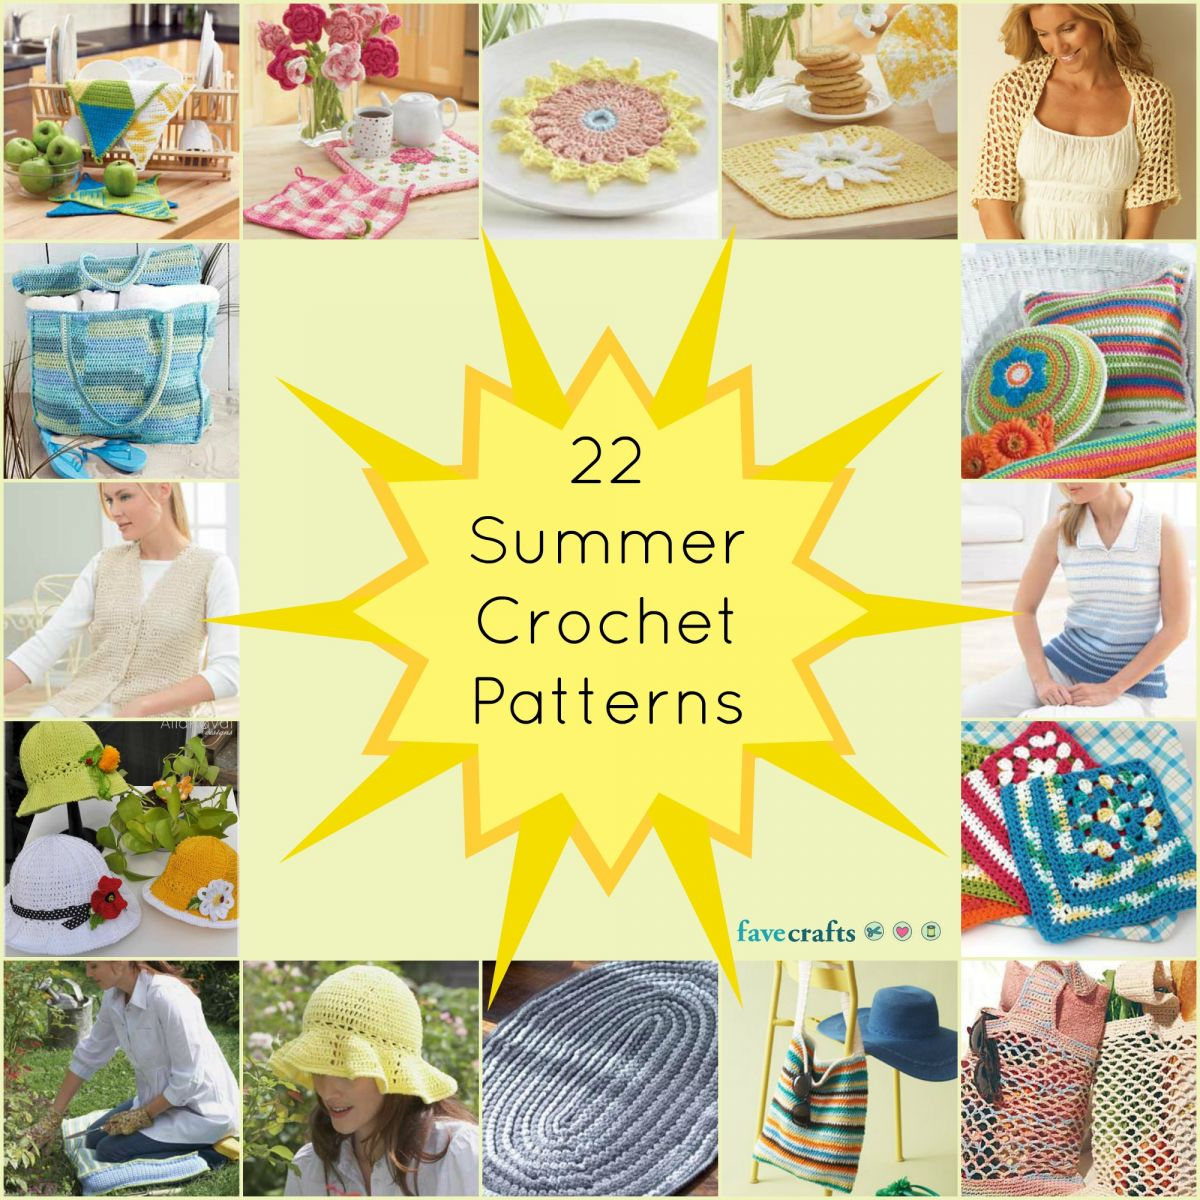 Summer Crochet Patterns